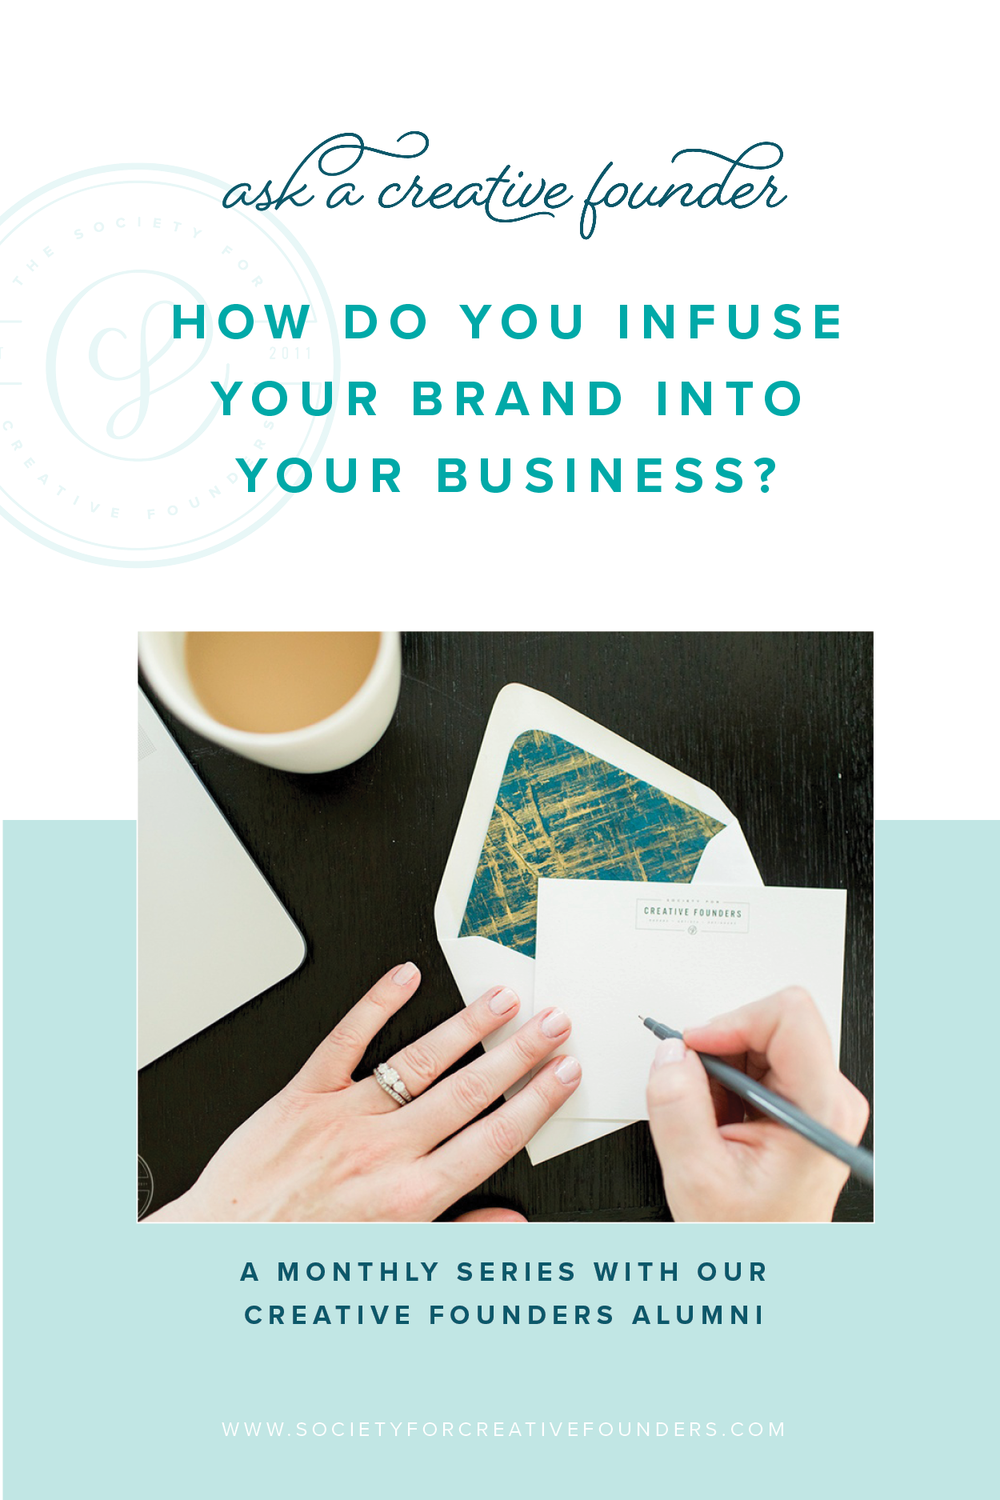 How to infuse your brand throughout your business - Ask A Creative Founder